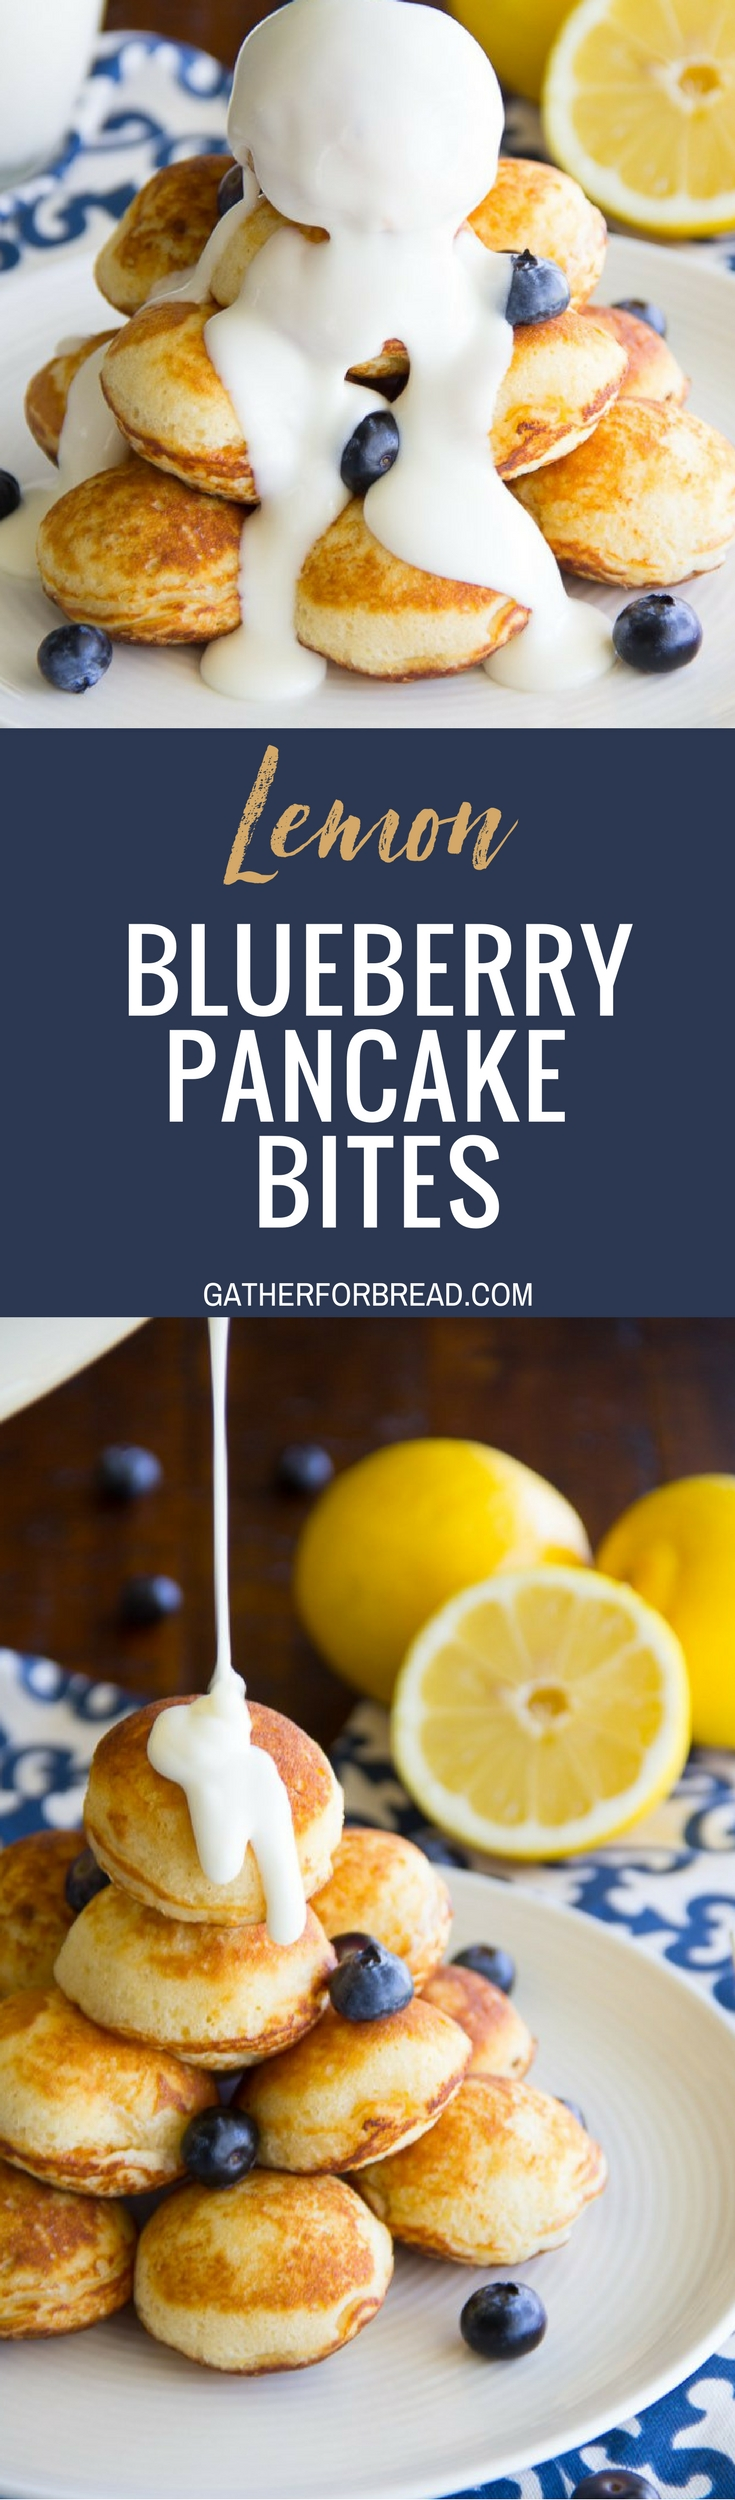 Lemon Blueberry Pancake Bites - Lemon blueberry pancake poppers, made these from scratch. These little poppers make the perfect easy breakfast recipe.